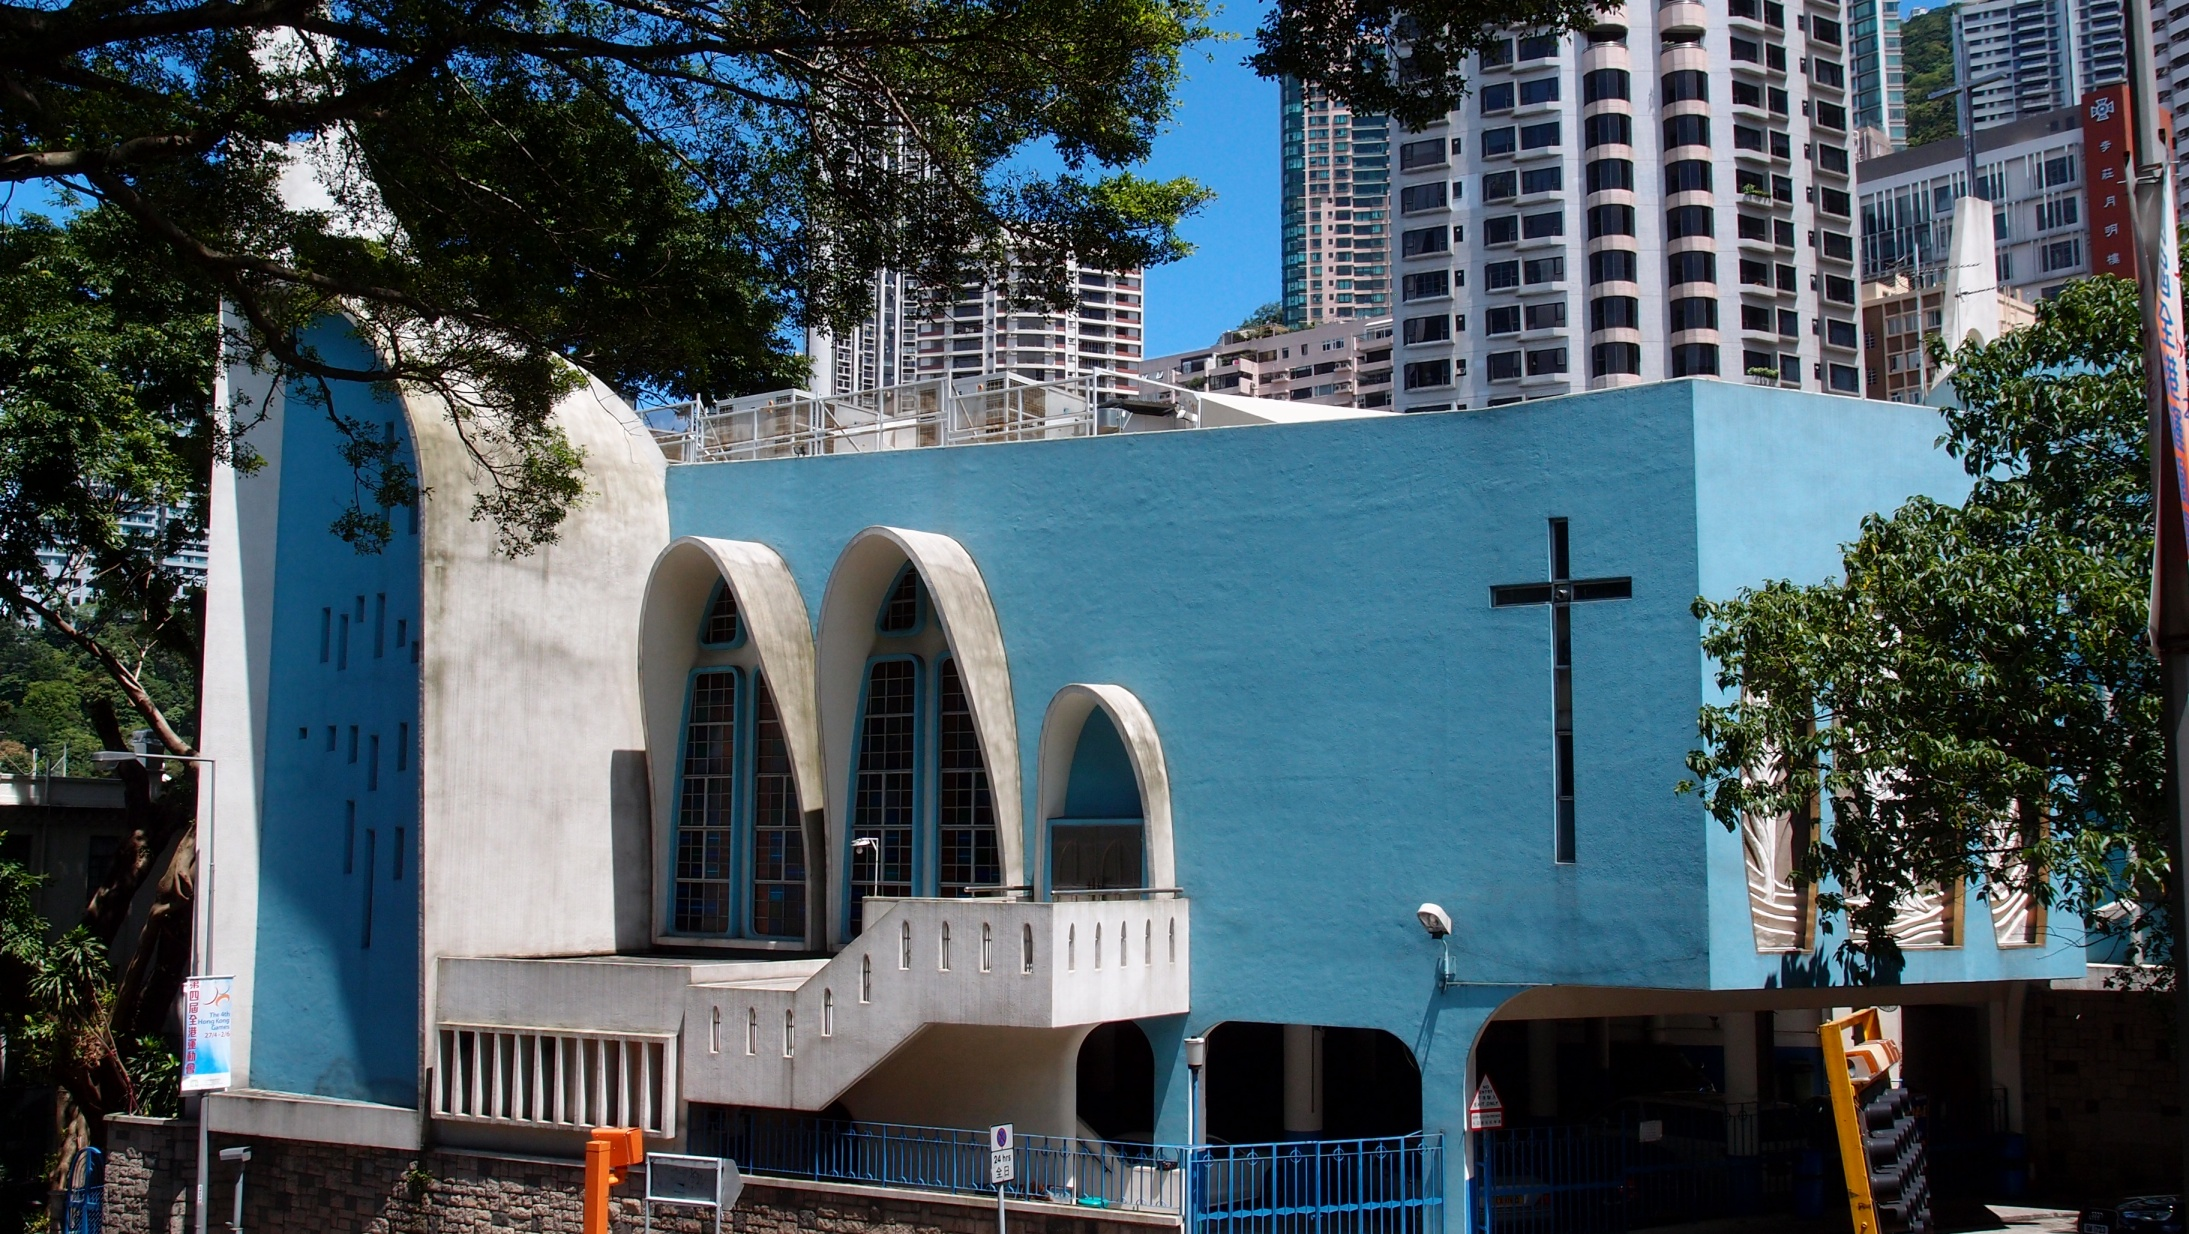 St. Josephs Church on Garden Road in the Mid Levels, a famous Catholic Church